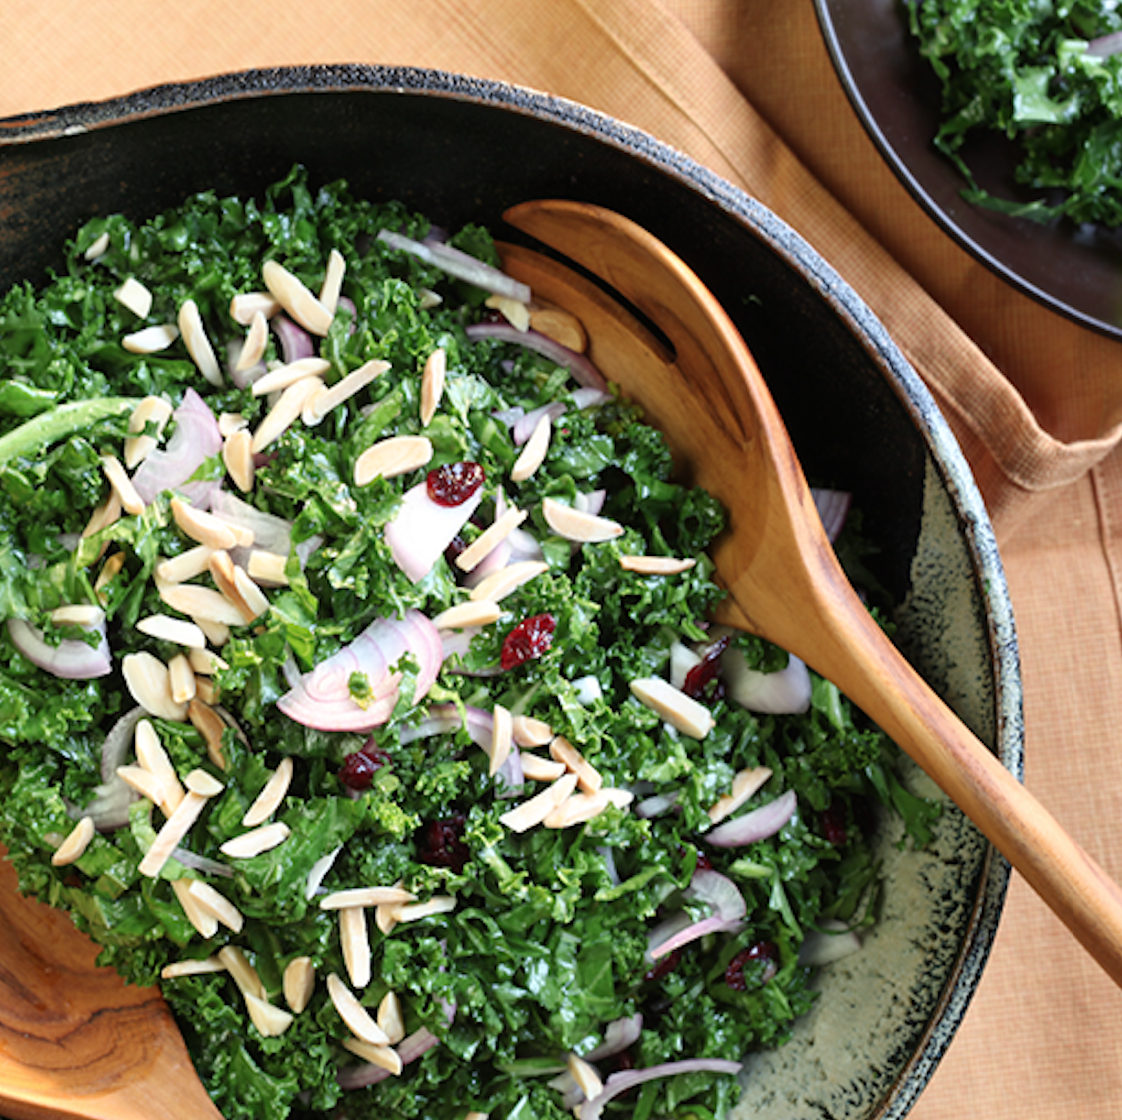 Above, a package of freshly grated cheese at the ready. Below, a salad with roasted almonds.Photo by   Ann Cutting.